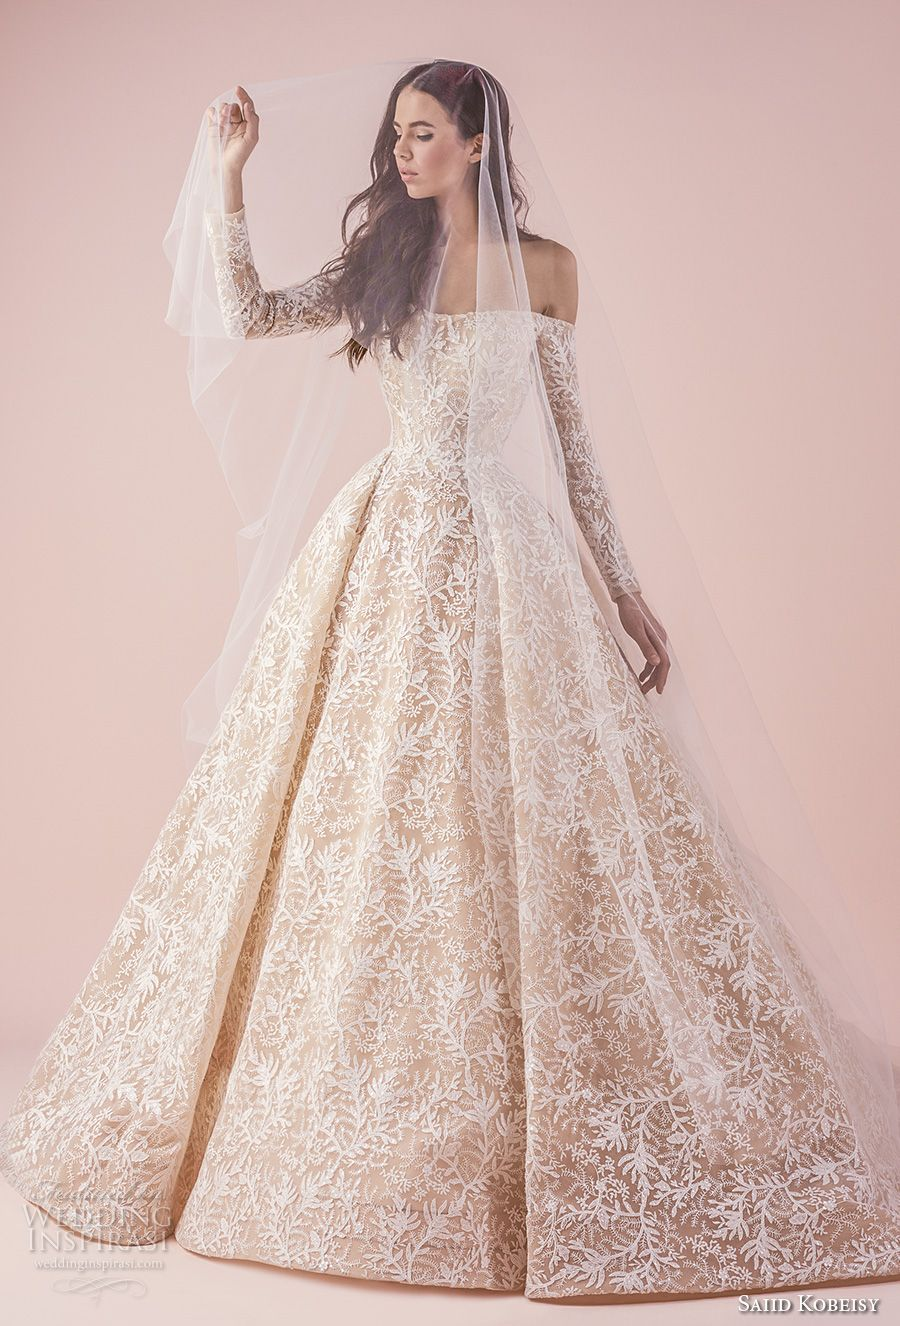 Saiid kobeisy wedding dresses bride pinterest blush color